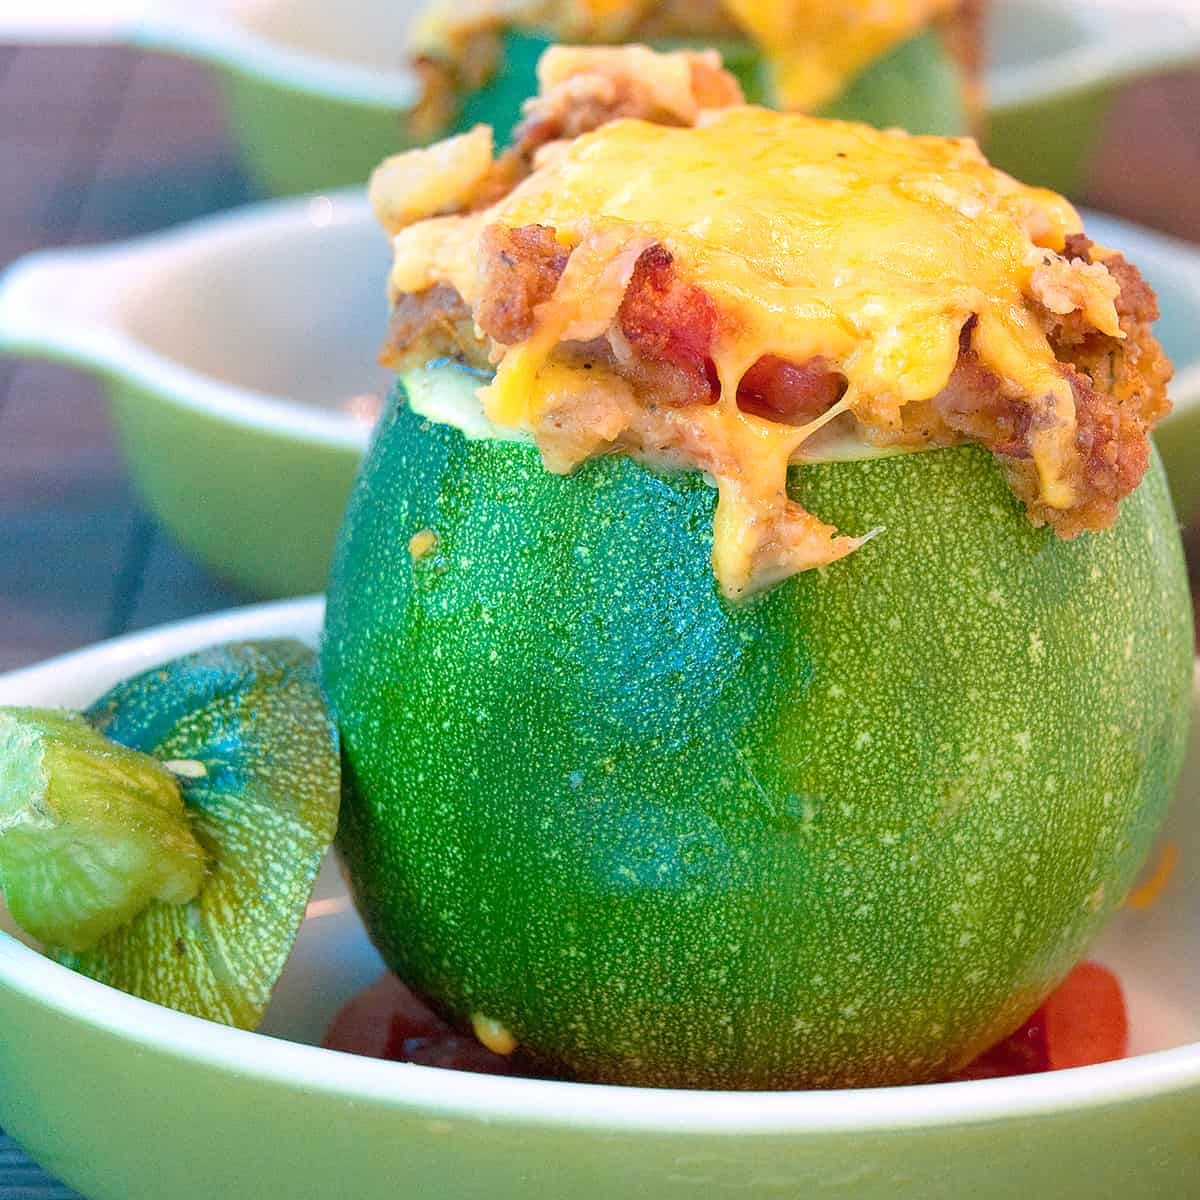 Baked stuffed 8-Ball Zucchini in a green serving dish.